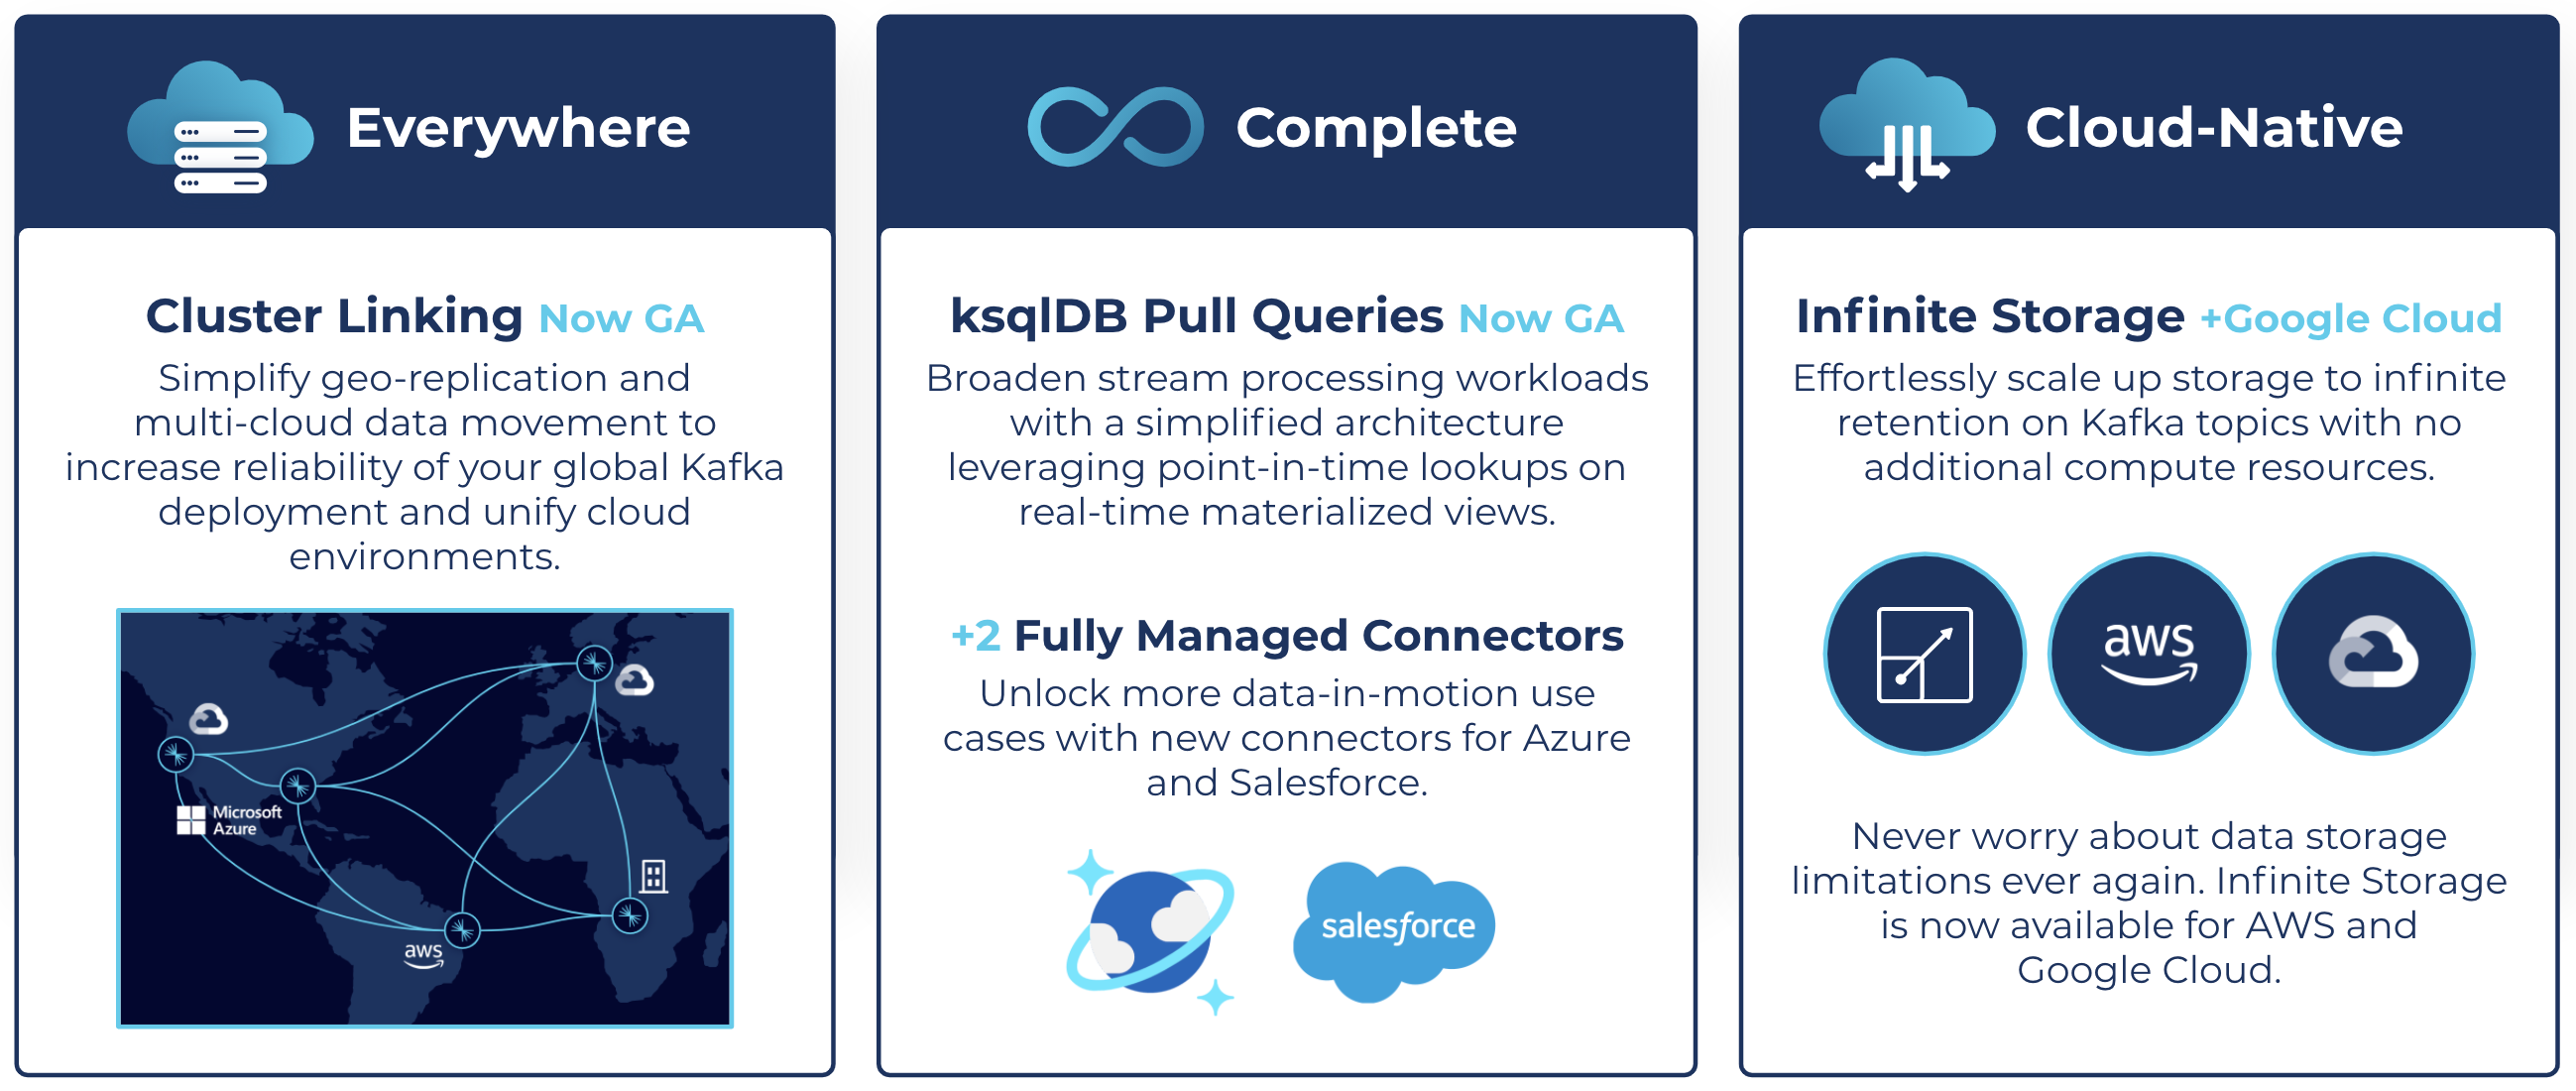 Everywhere, complete, and cloud-native